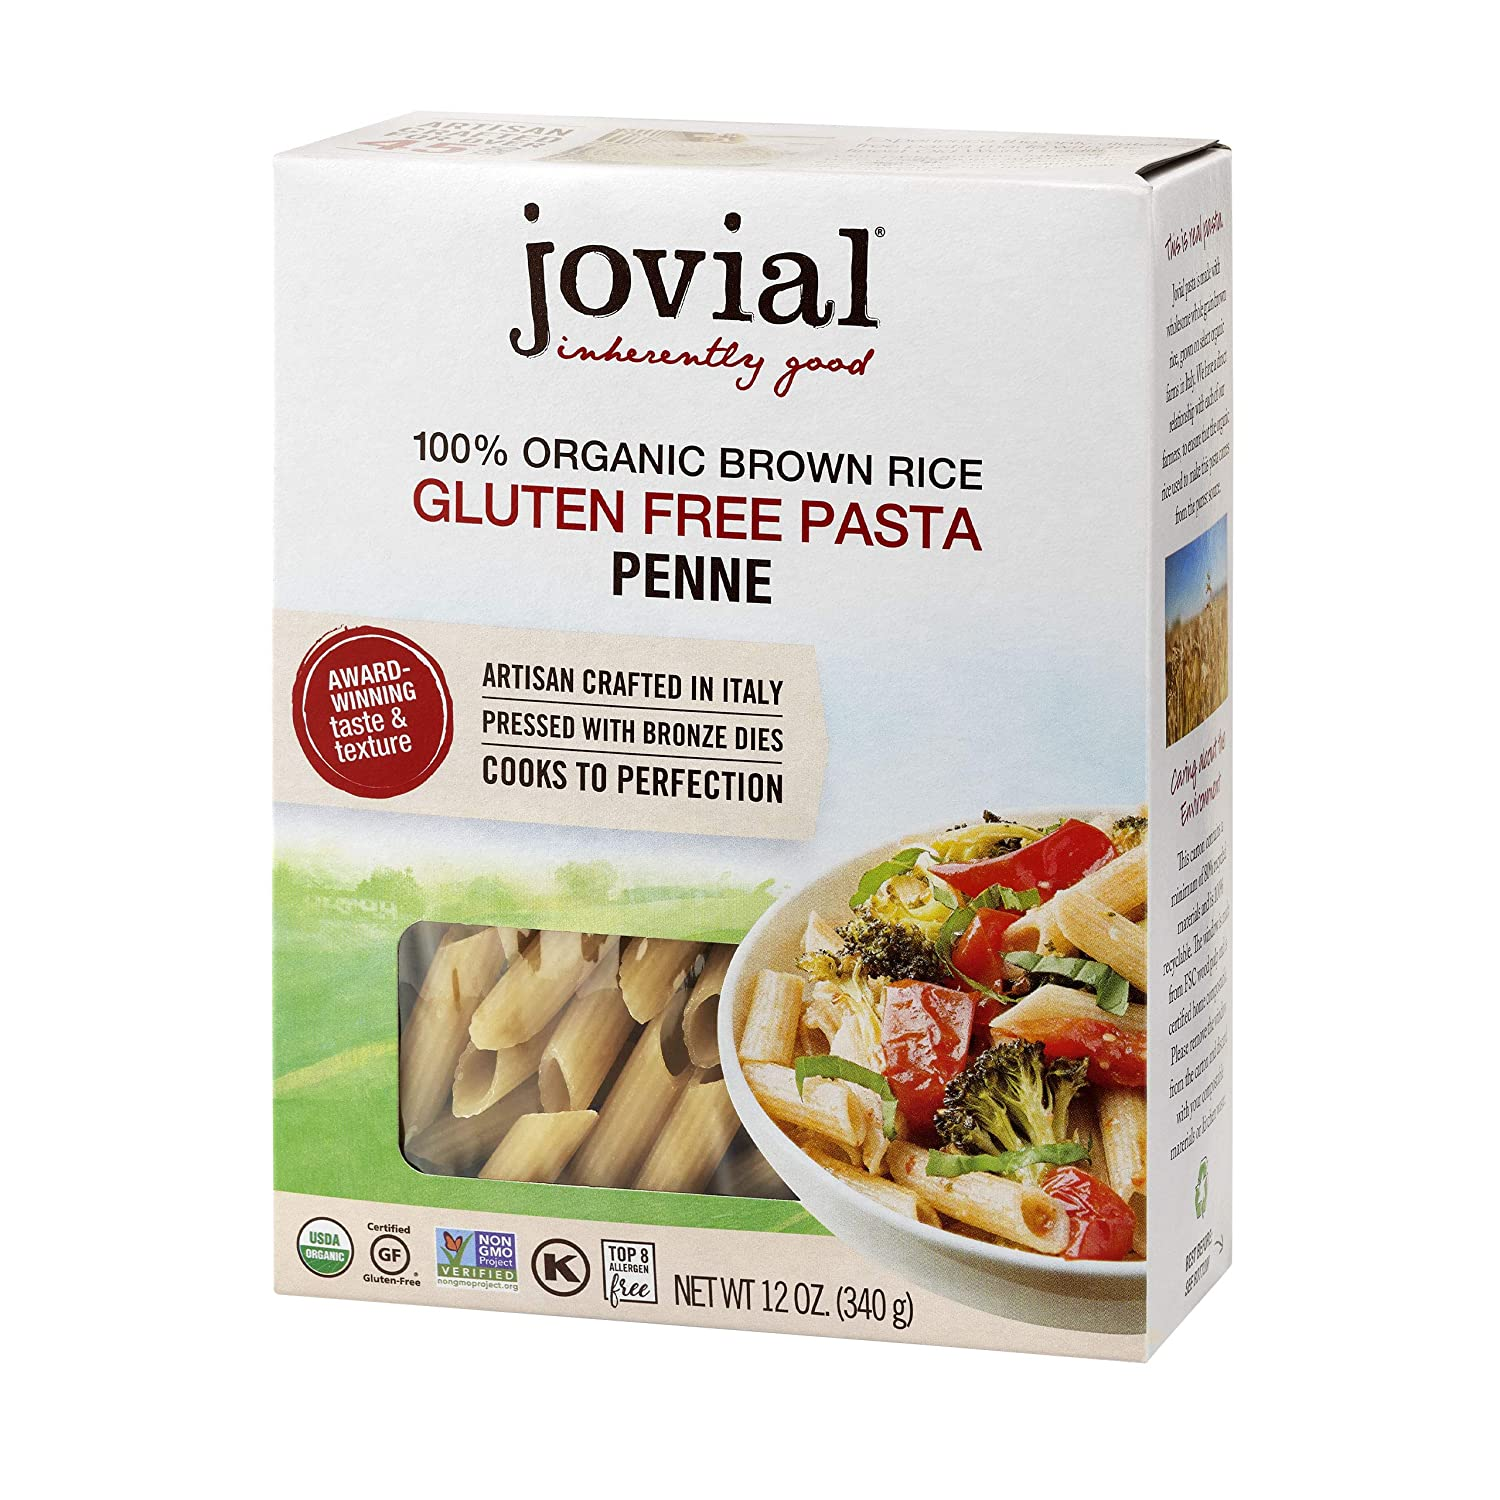 Jovial Penne Rigate Gluten-Free Pasta | Whole Grain Brown Rice Penne Rigate Pasta | Non-GMO | Lower Carb | Kosher | USDA Certified Organic | Made in Italy | 12 oz (12 Pack)